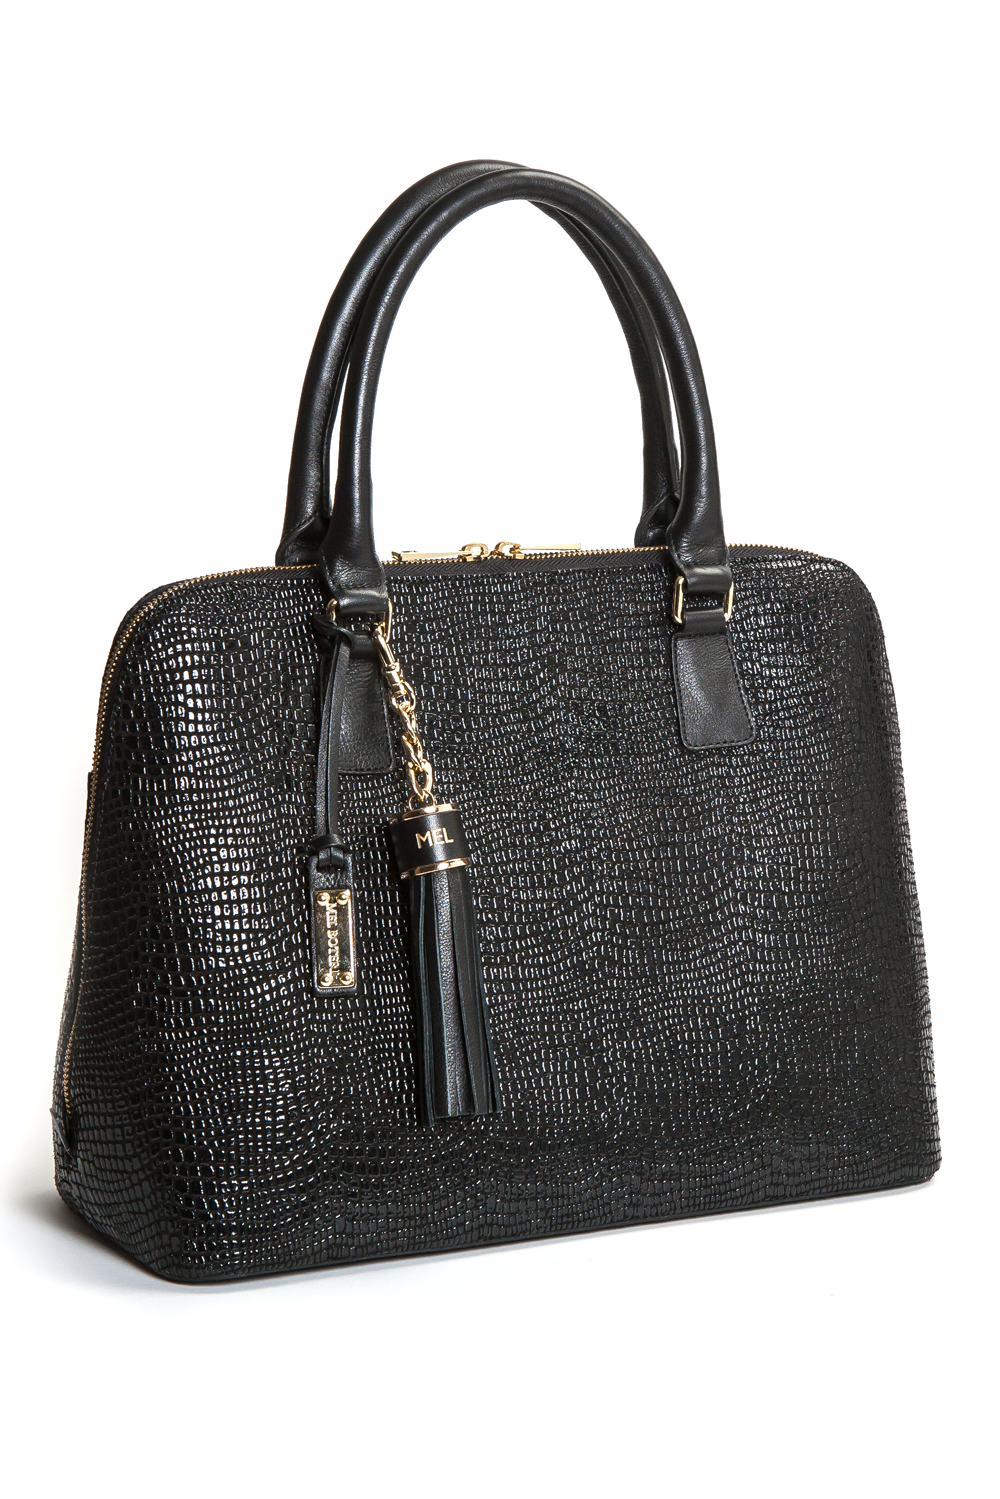 Mel Boteri | High Gloss, Black Lizard-Print Leather 'Watson' Tote | Side View